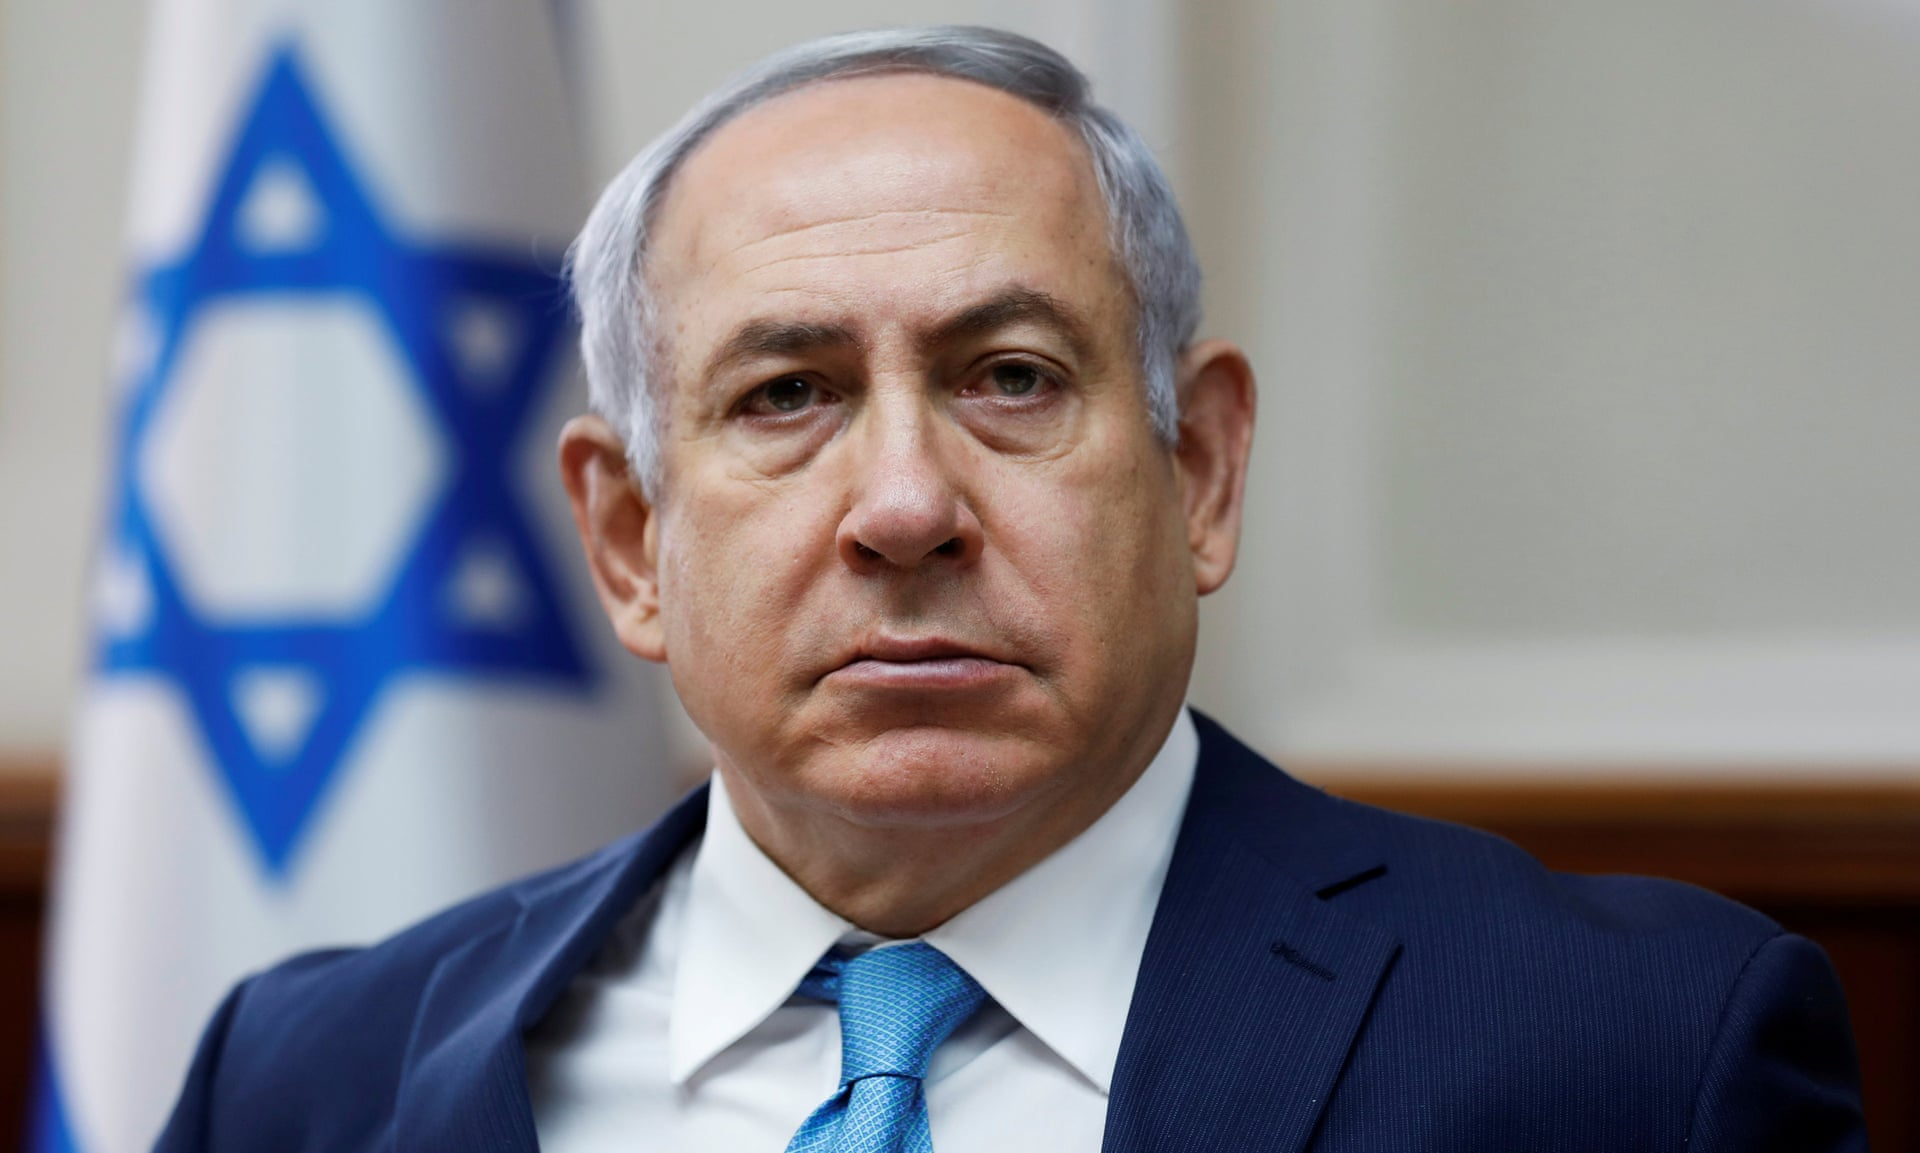 Netanyahu: Israel And Russia Will Work To Remove All Foreign Forces From Syria